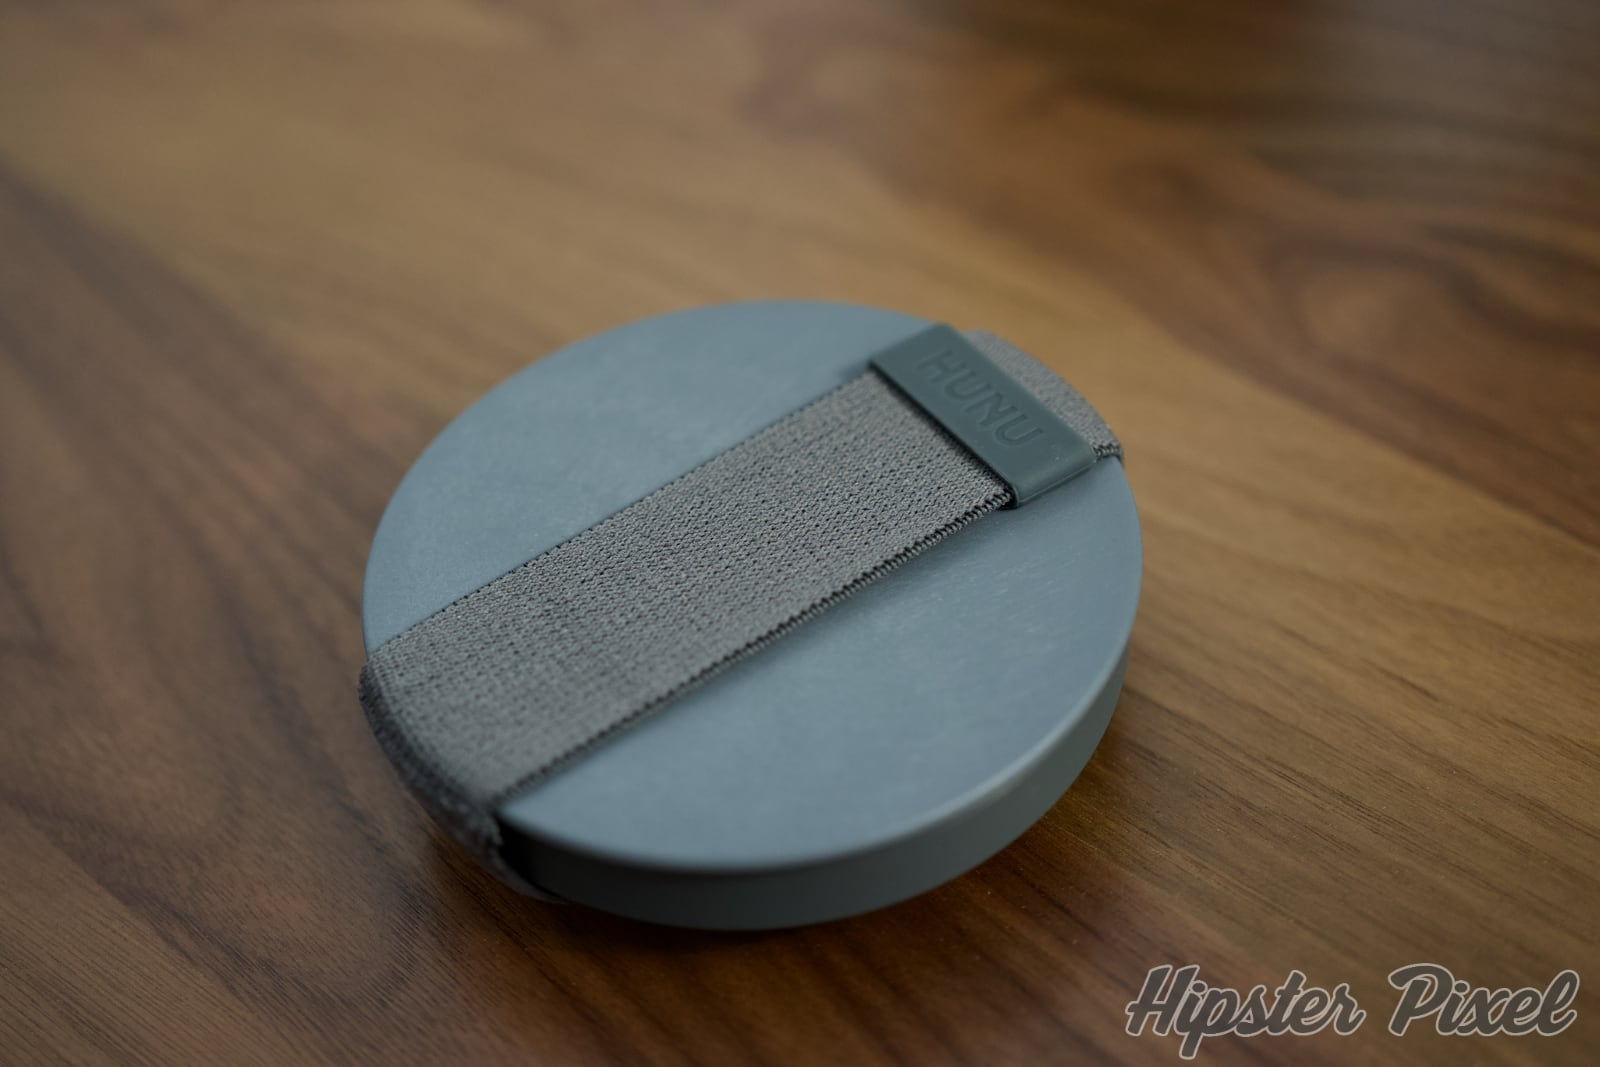 Hunu Collapsible Pocket Coffee Cup Review